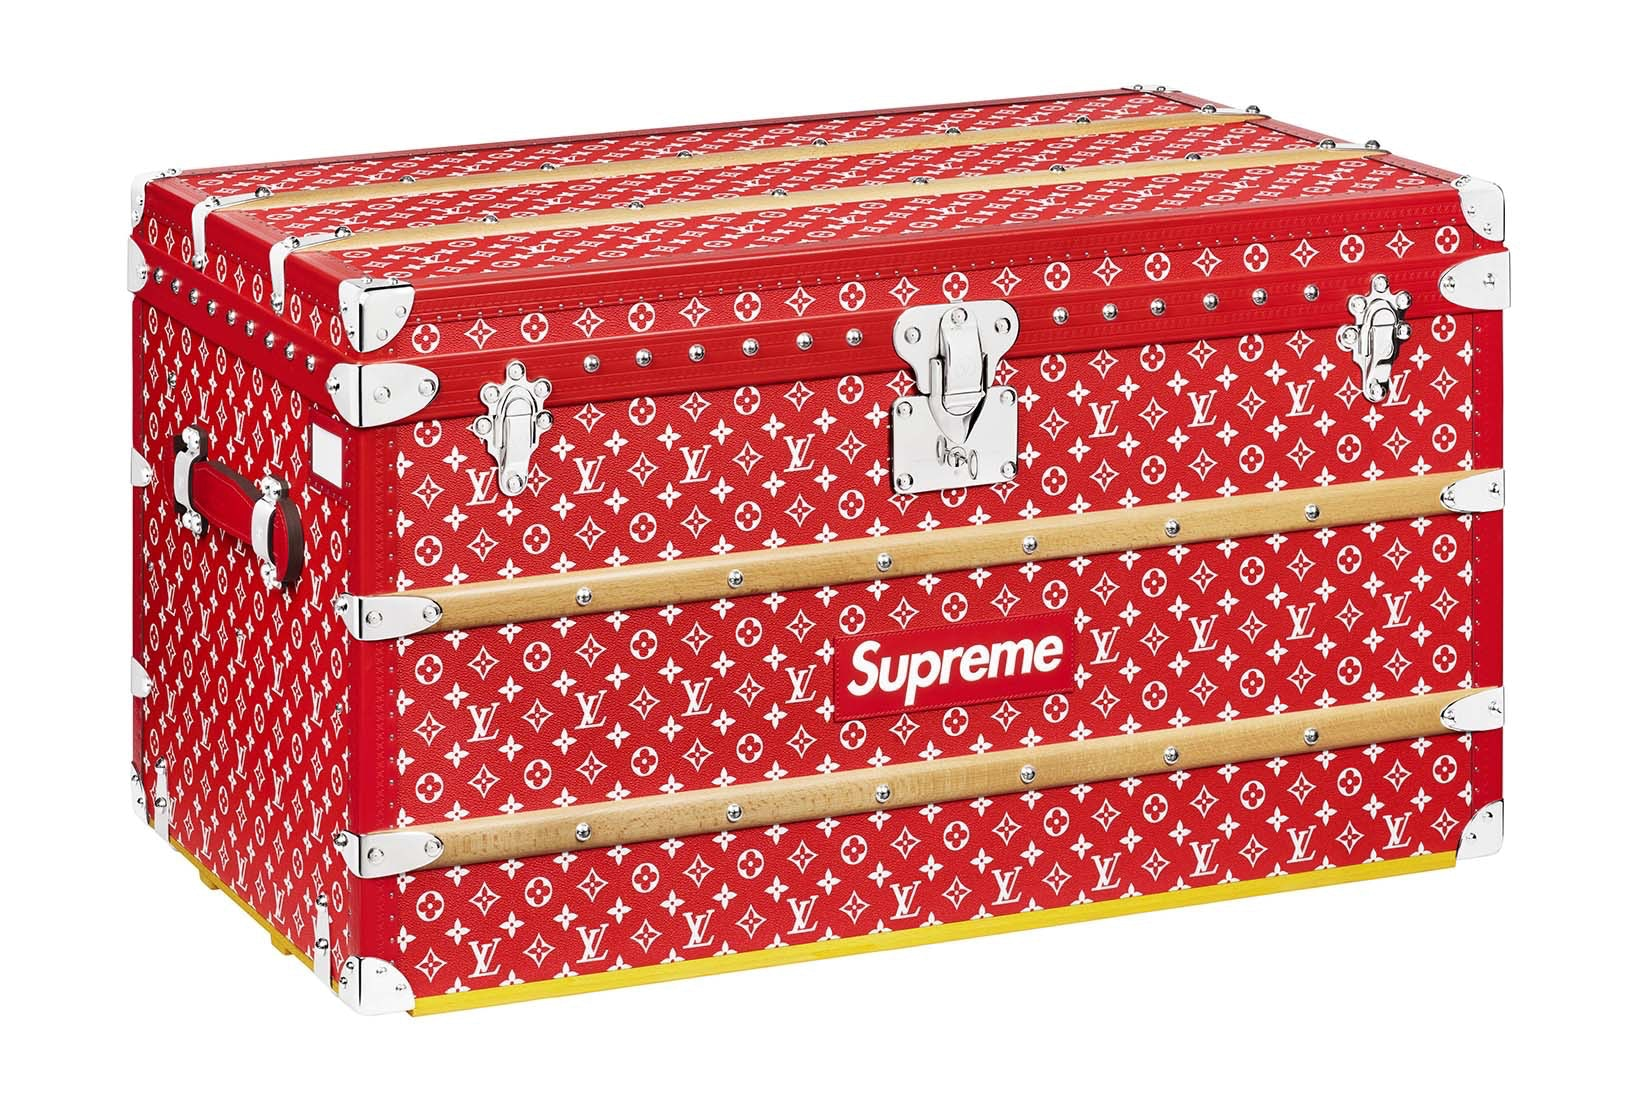 Supreme(シュプリーム)×Louis Vuitton(ルイ・ヴィトン) / マル クーリエ 90 トランク (Malle Courrier 90 Trunk)